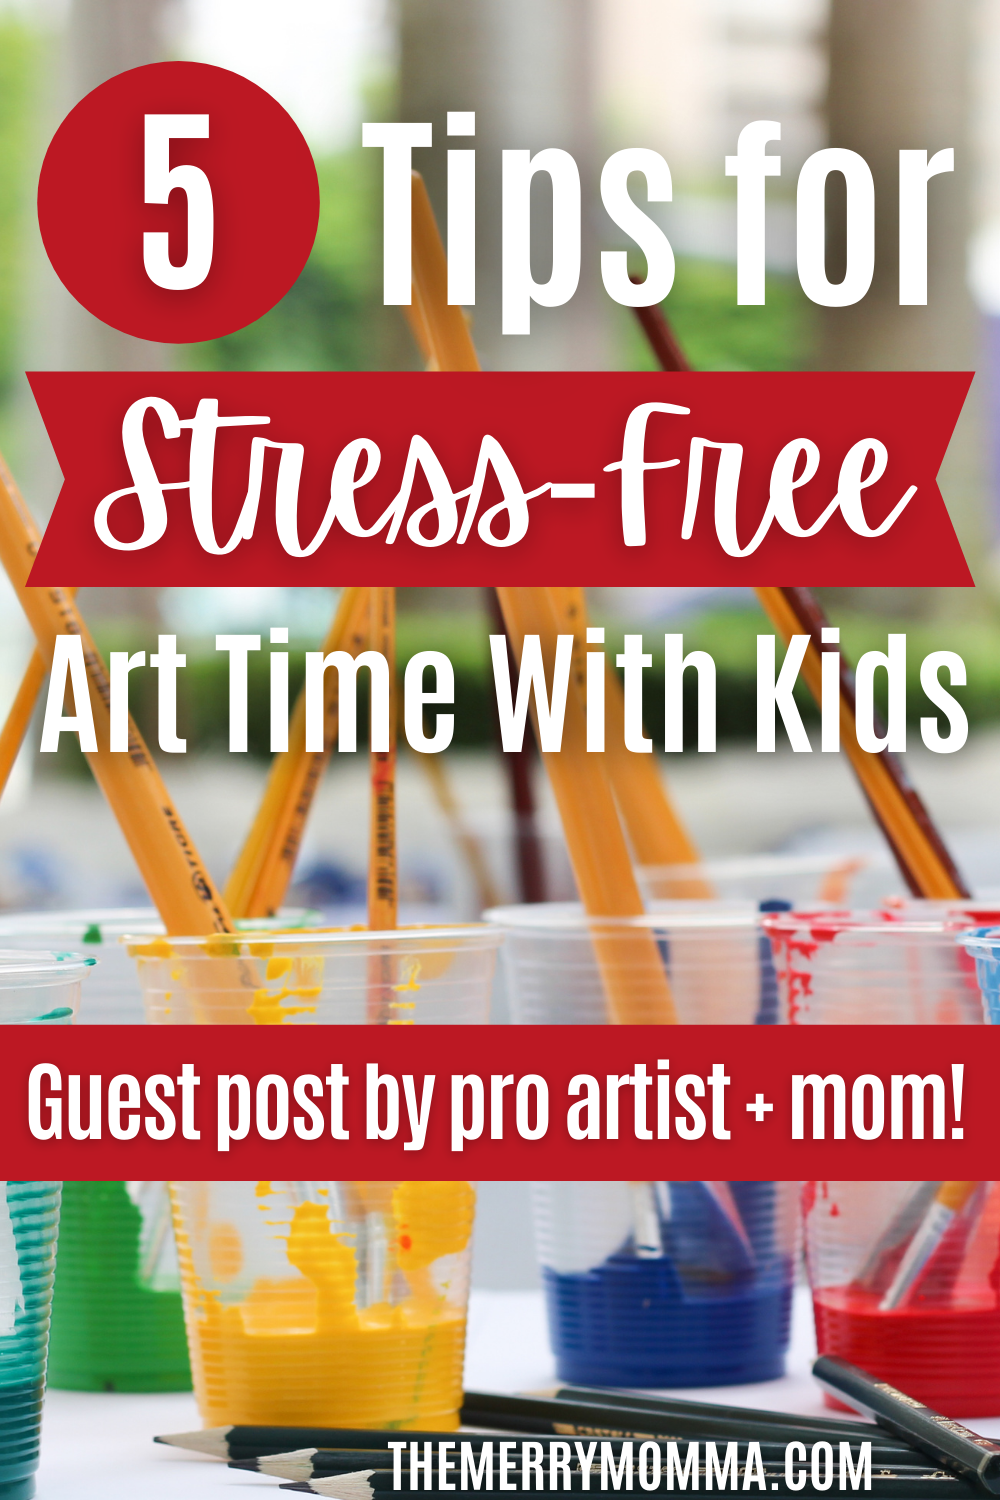 5 Tips for Stress-Free Art Time With Kids {Guest Post}